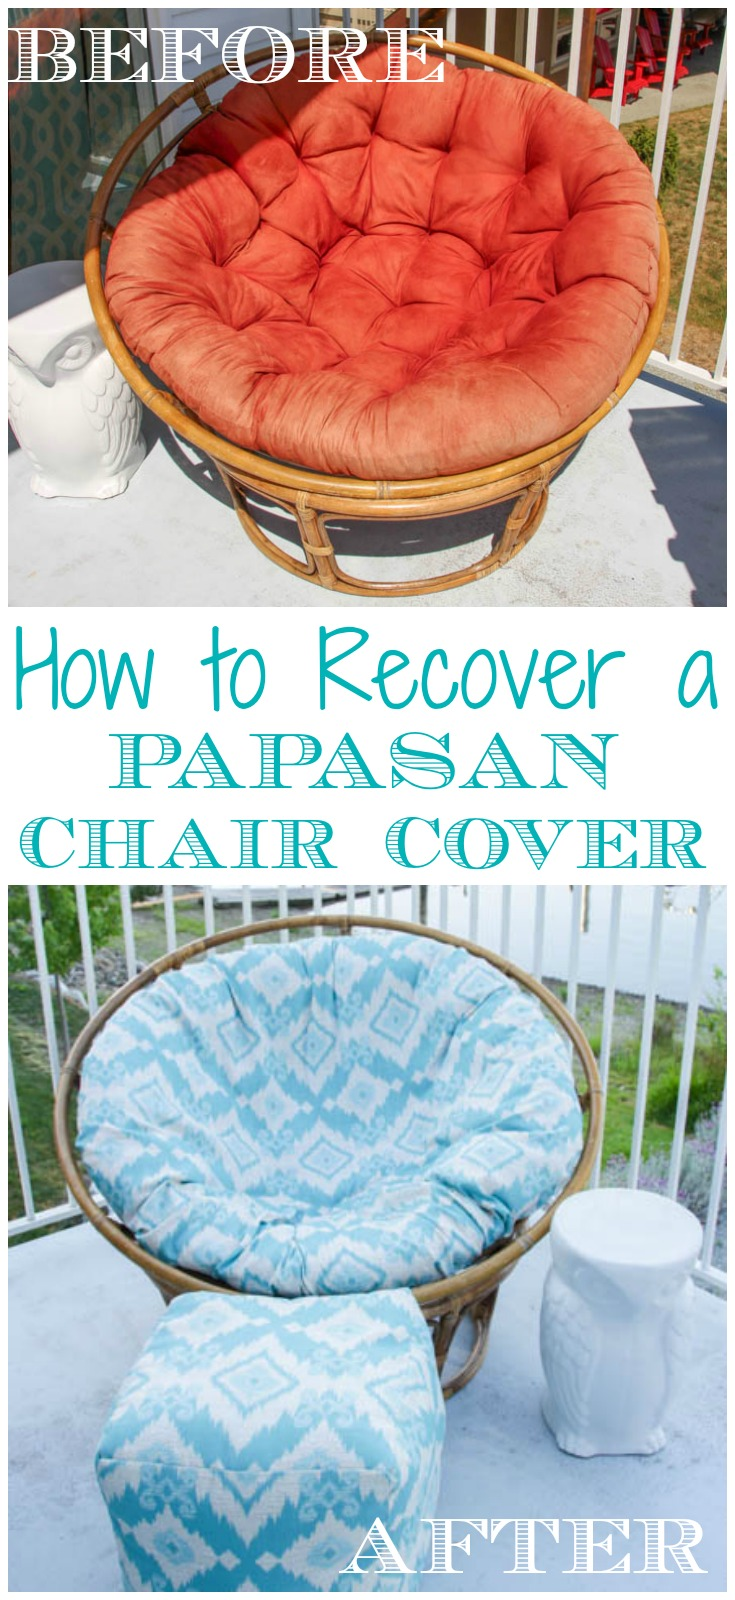 Papasan Cushion | Papasan Cushion Covers | Wicker Seat Cushions